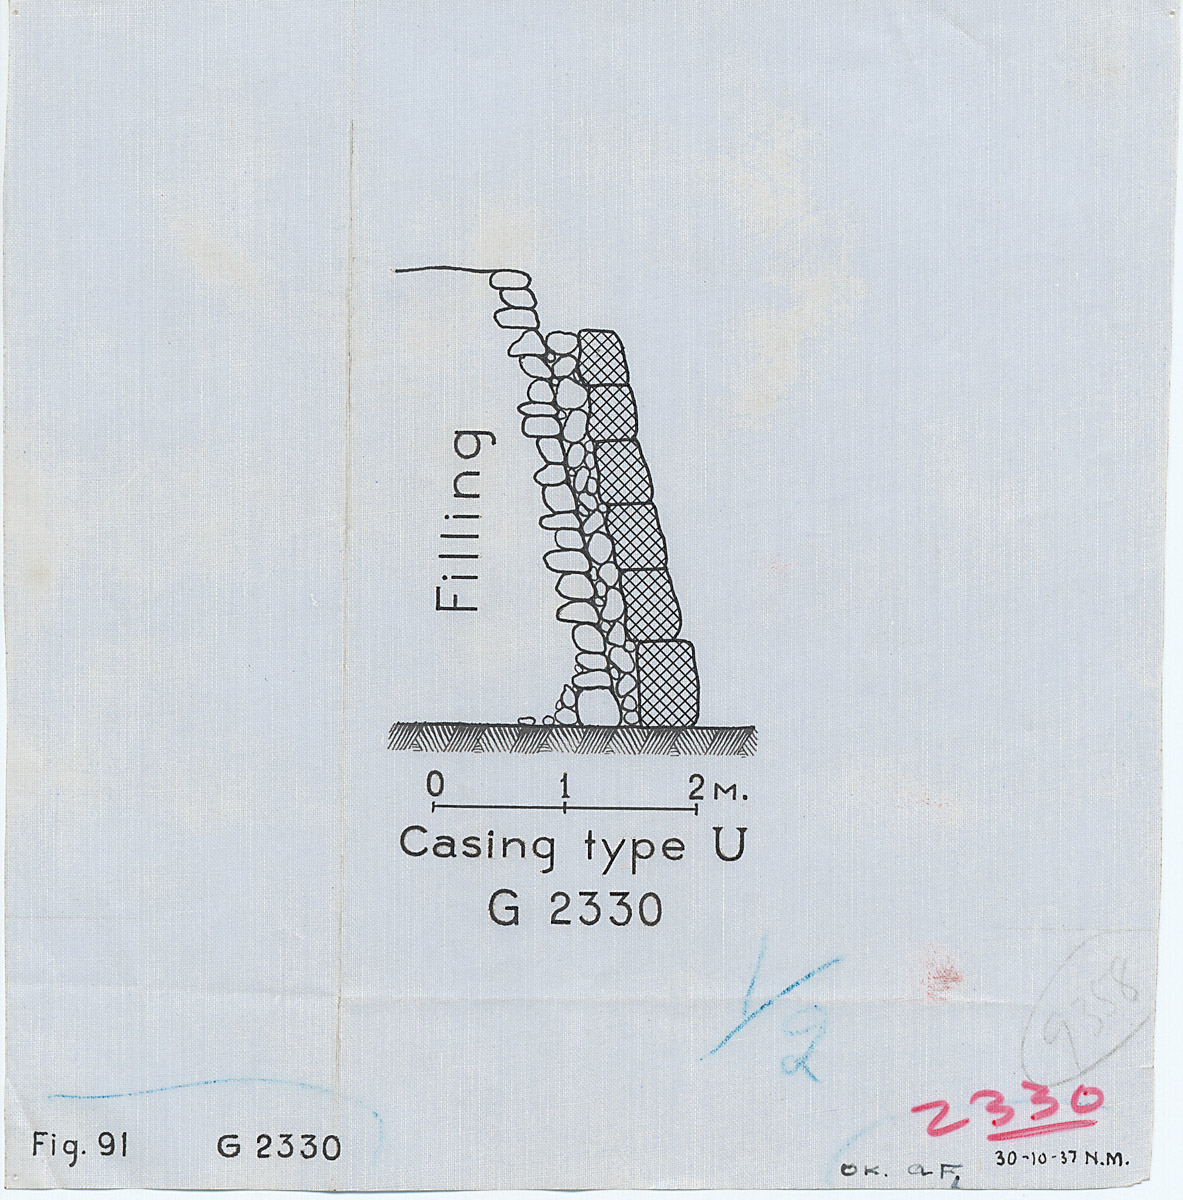 Maps and plans: G 2330 = G 5380, Section of casing type U